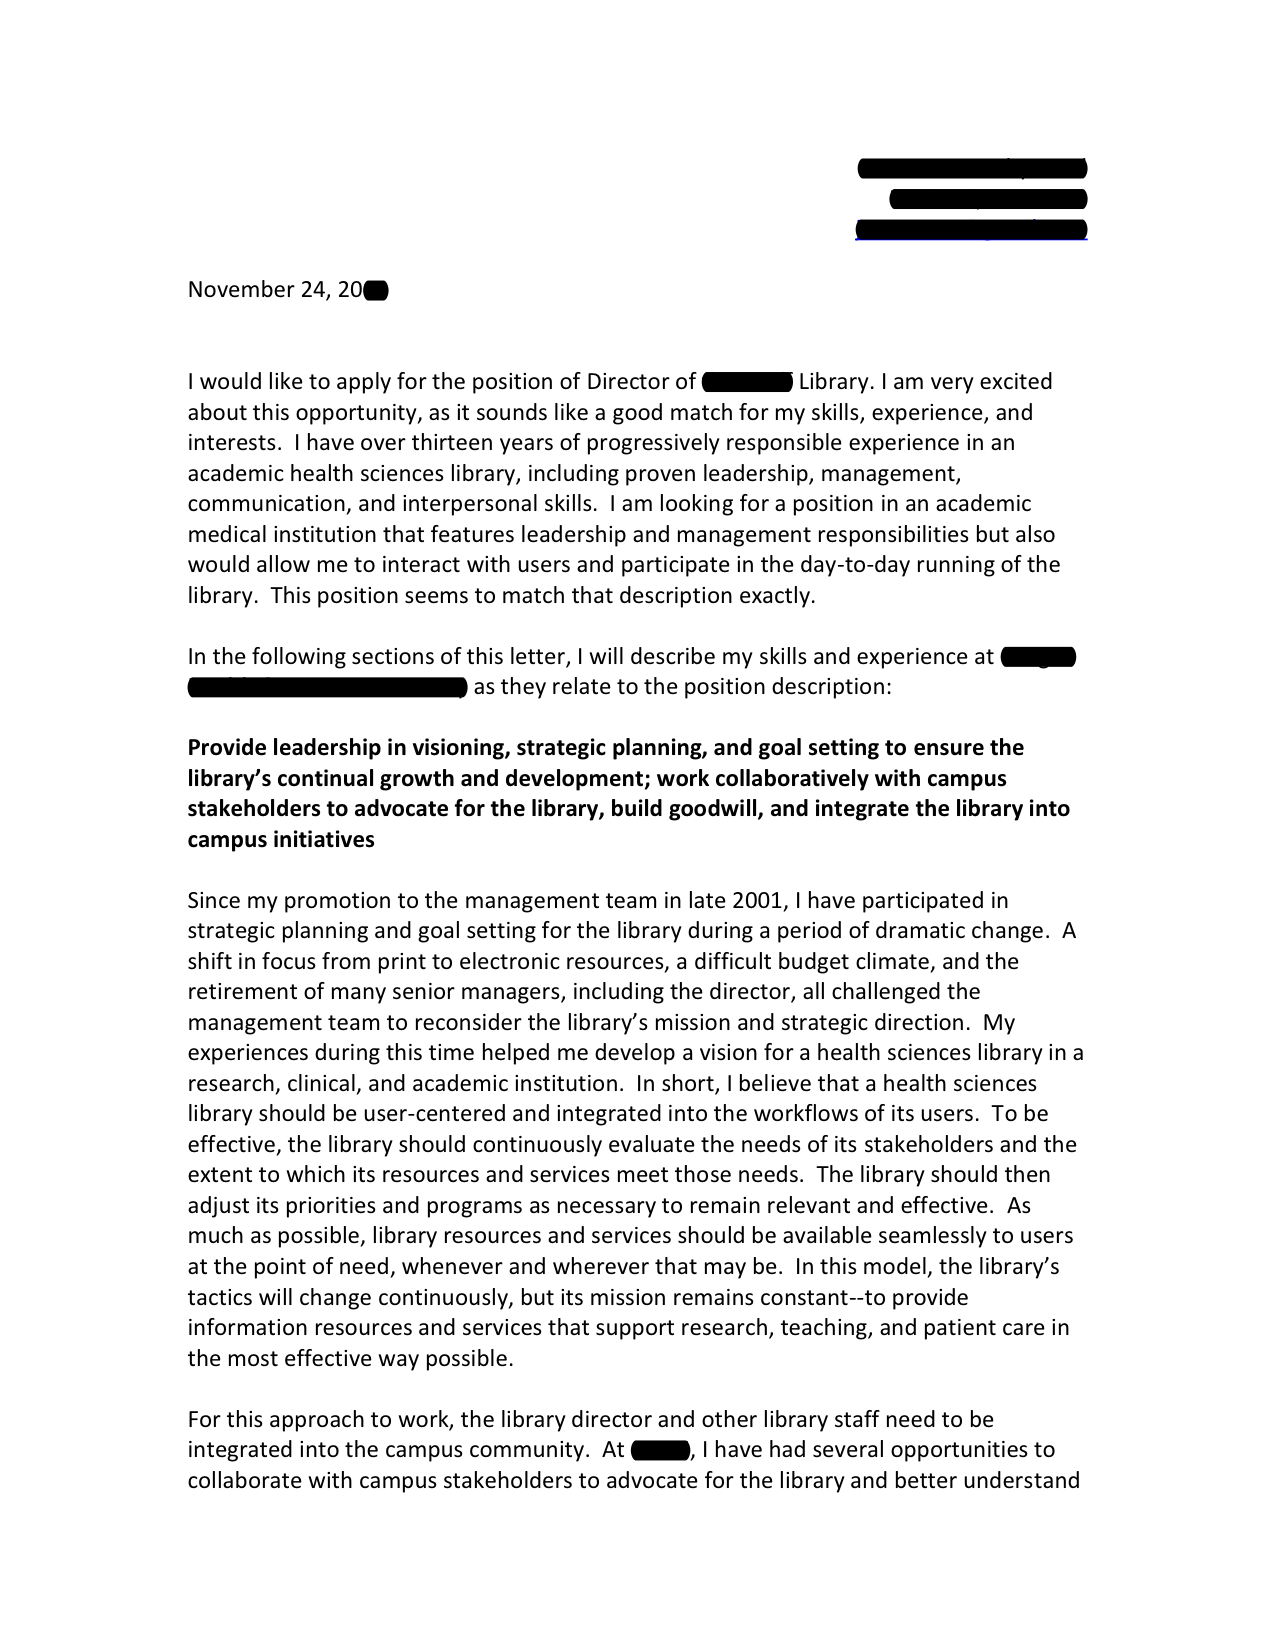 biomedical research library director cover letter